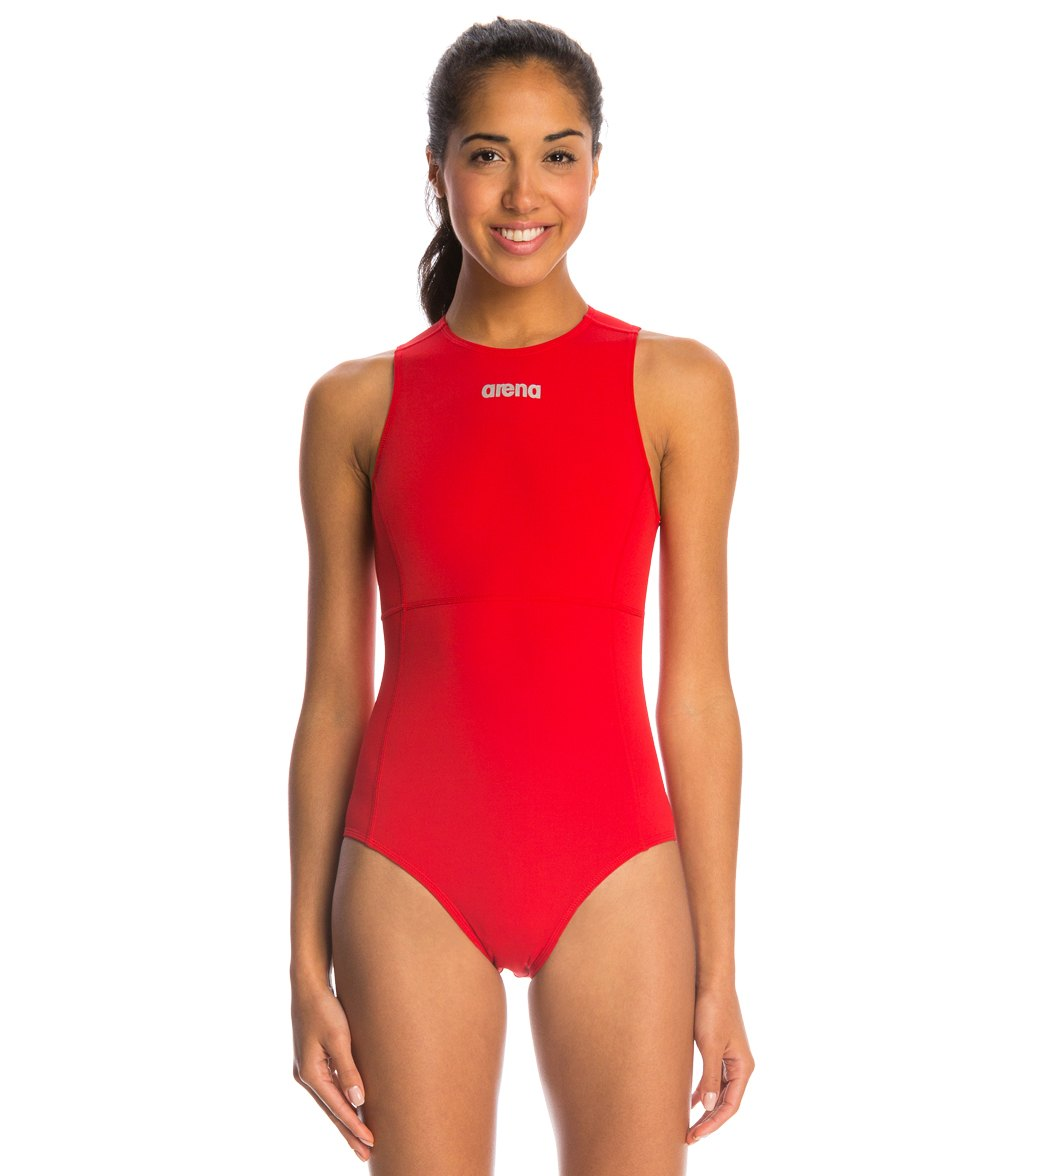 ARENA Women's Mission Water Polo One Piece Swimsuit - Adult (Red/Metallic Silver (45))